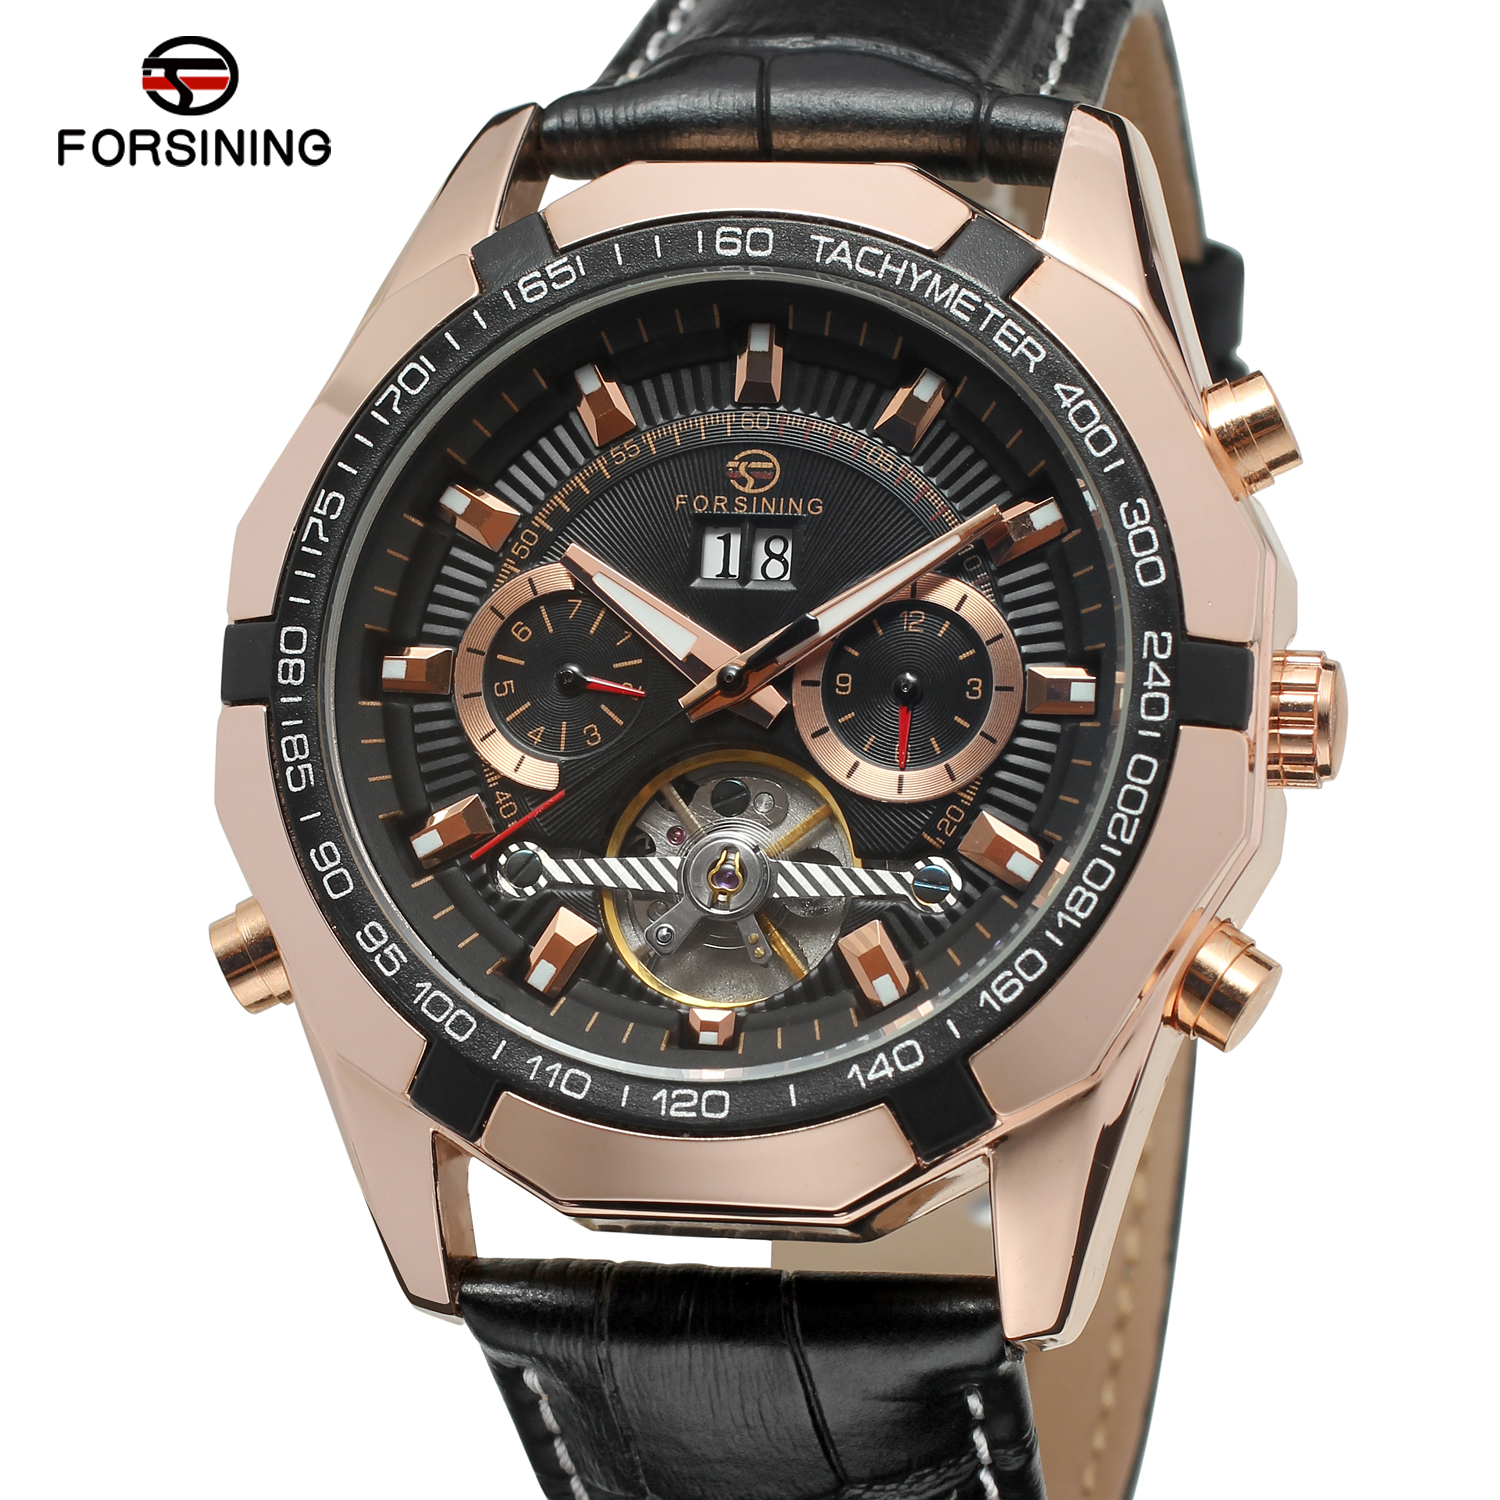 Forsining Top Brand Business Mens Watch Gold  Leather Automatic Mechanical Toubilion Wrist Watches Relogio MasculinoForsining Top Brand Business Mens Watch Gold  Leather Automatic Mechanical Toubilion Wrist Watches Relogio Masculino